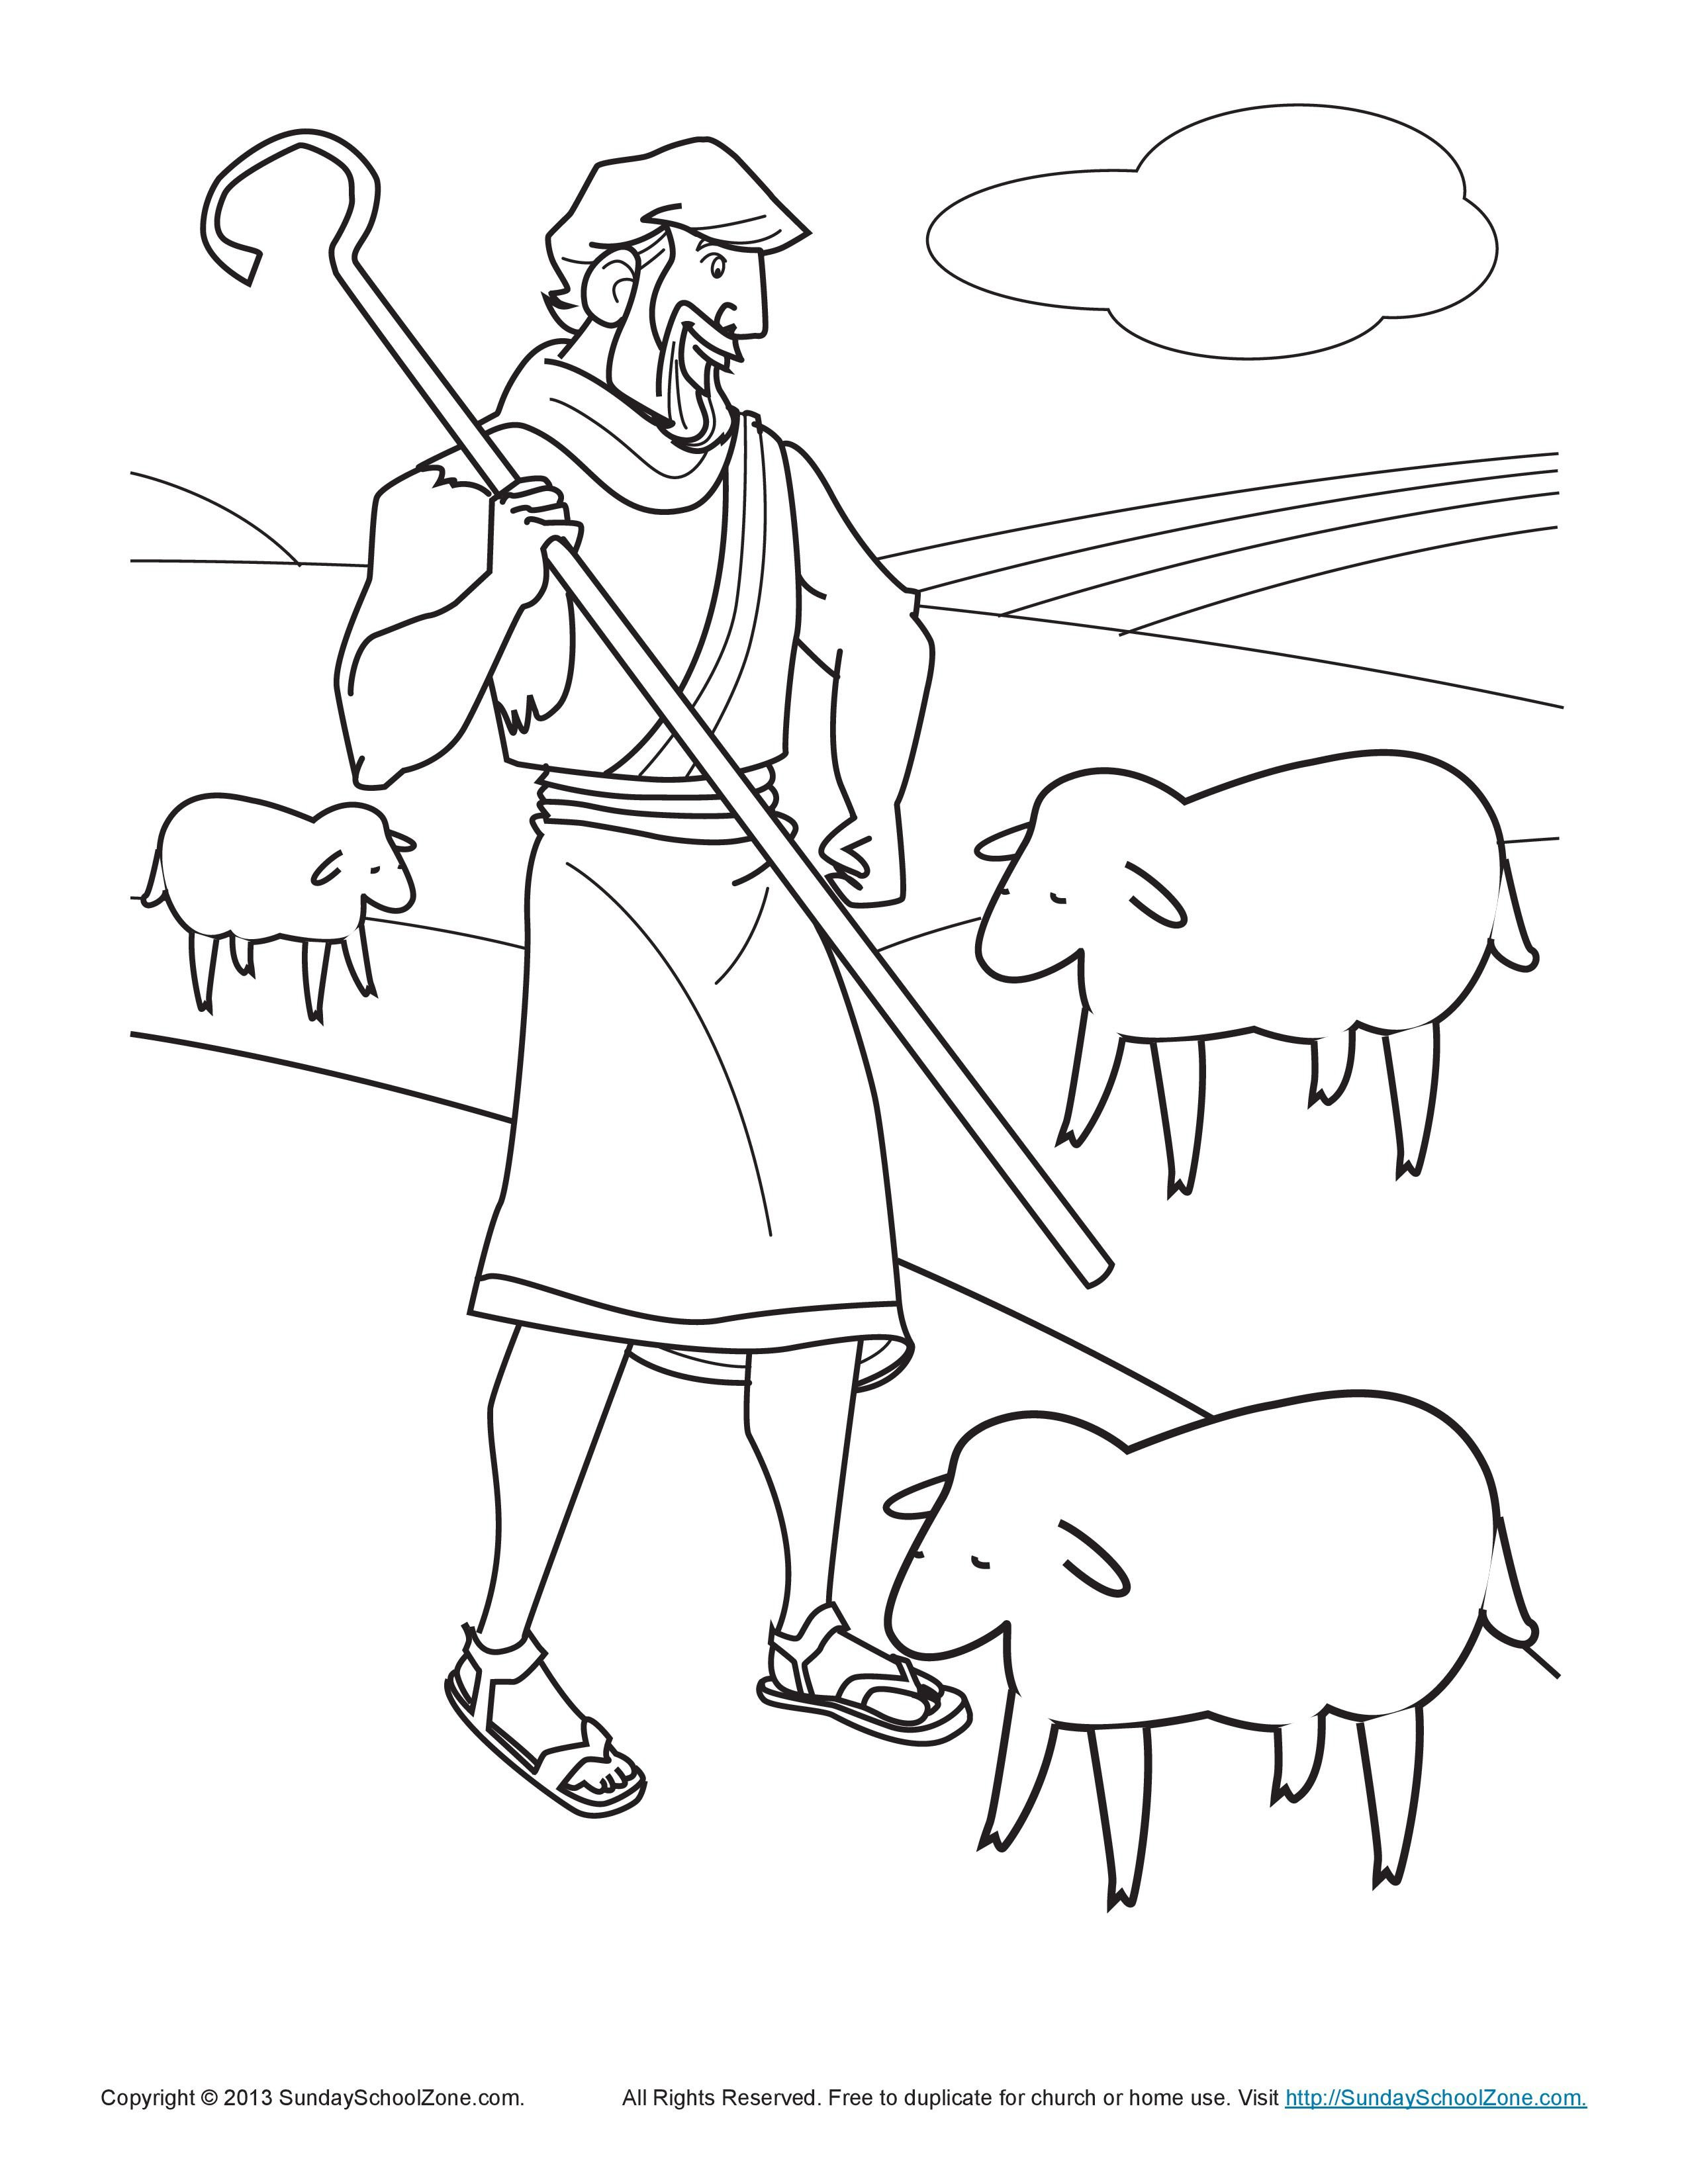 The Shepherd Tends His Flock Coloring Page